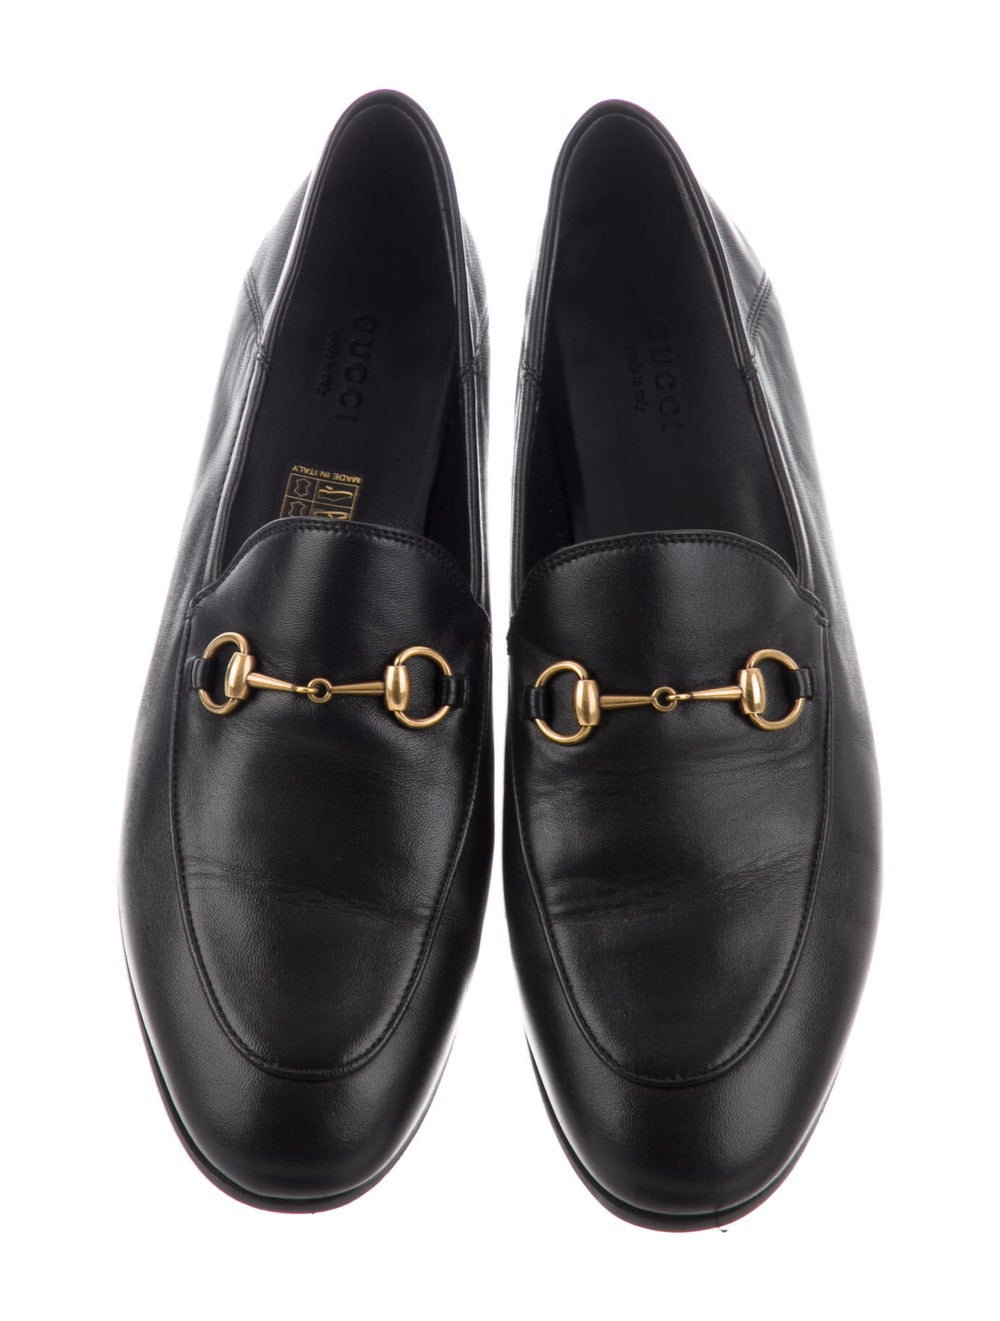 Gucci Horsebit Accent Leather Loafers Black - image 3